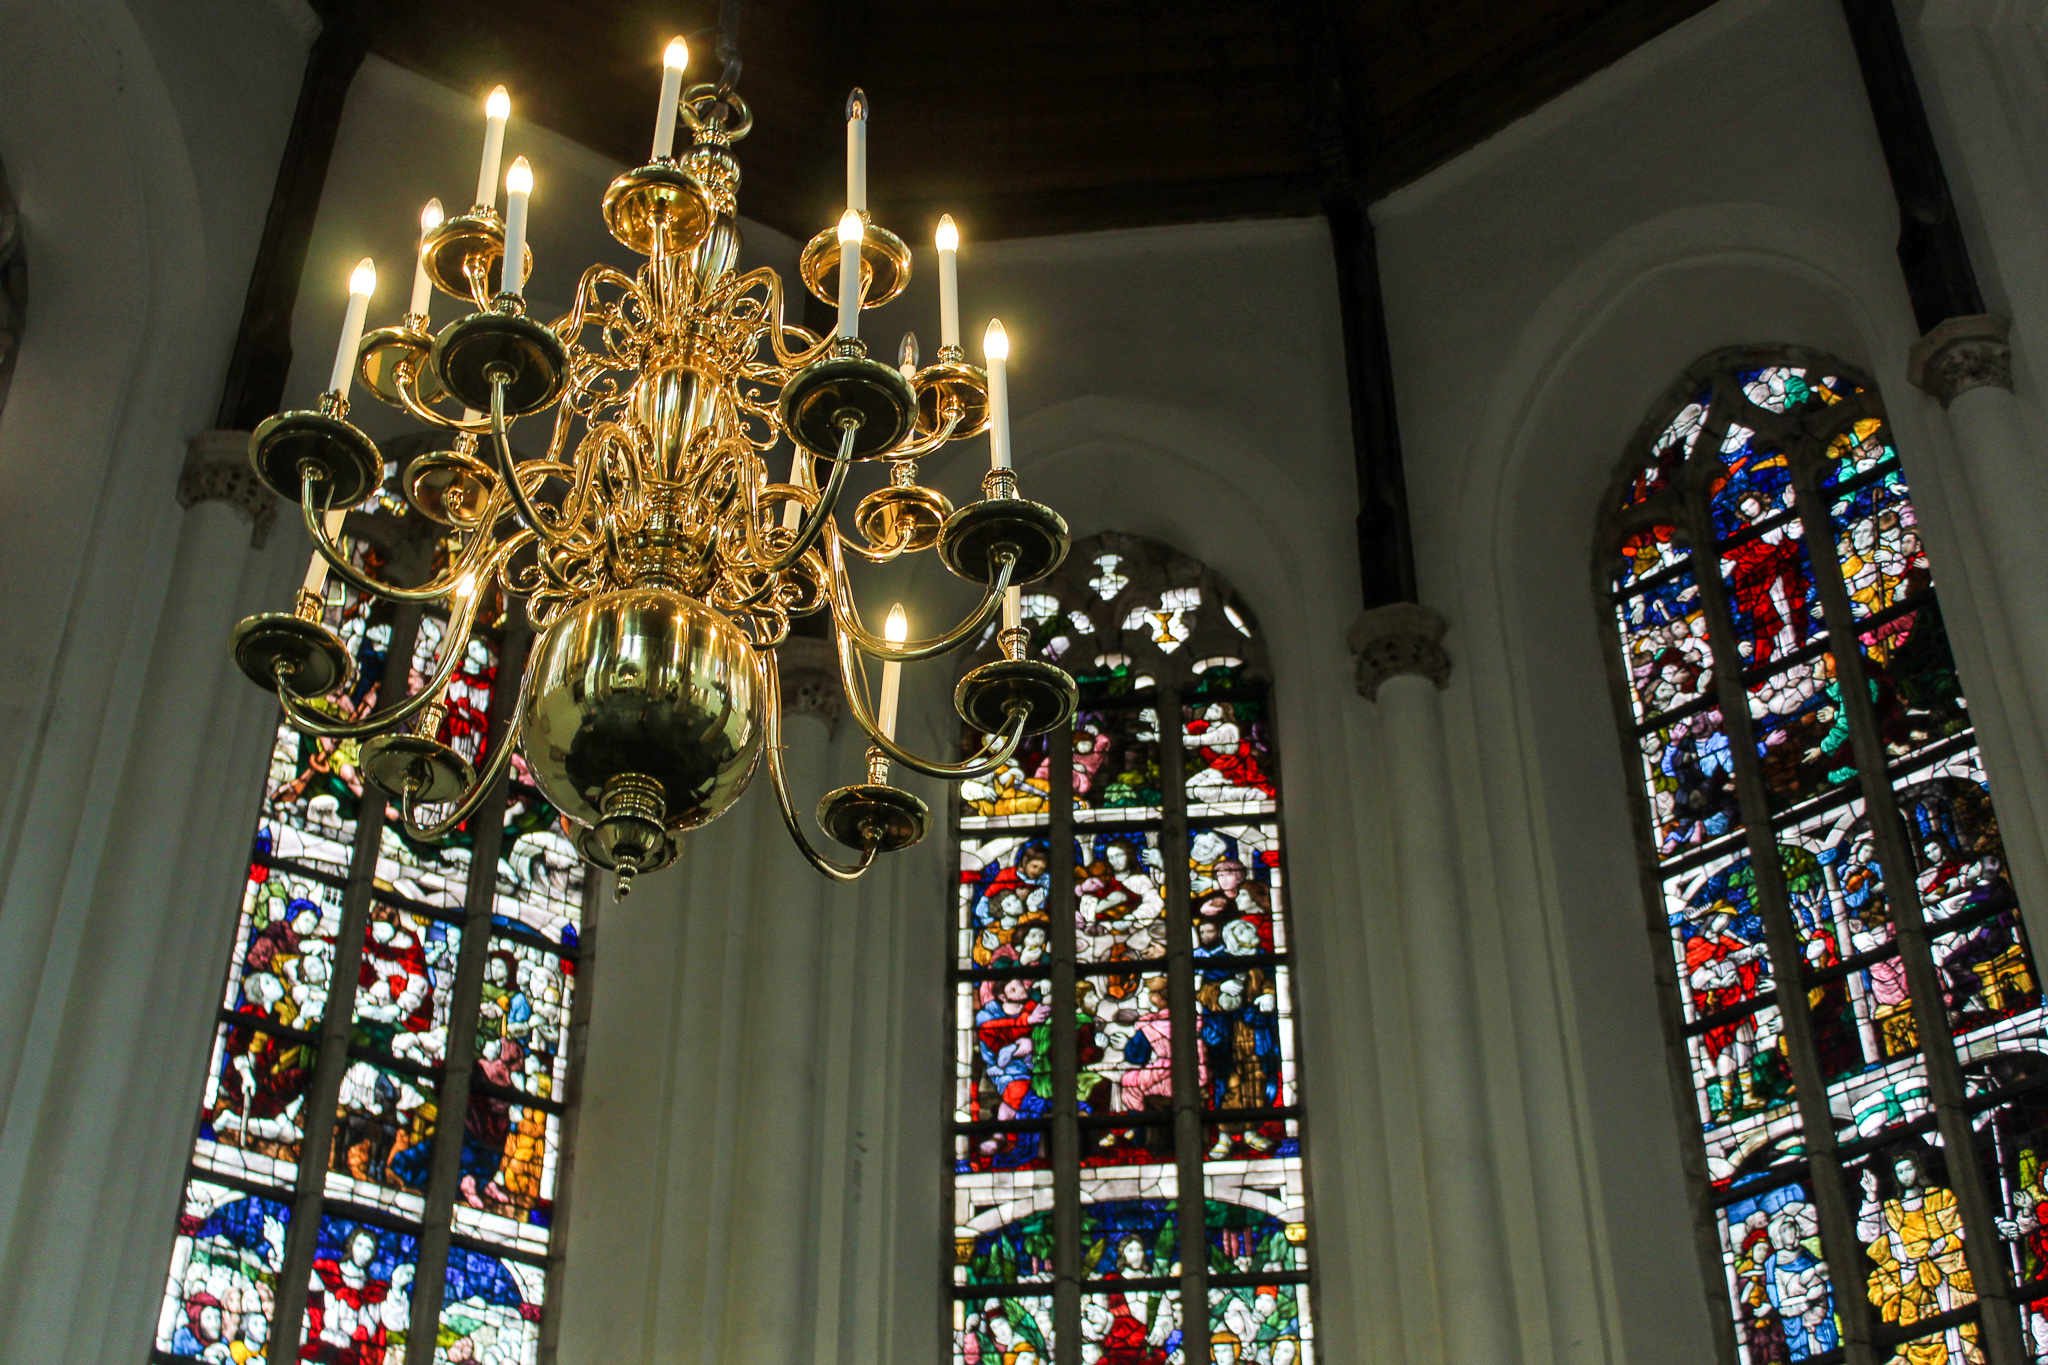 the old church is among the things to do in delft